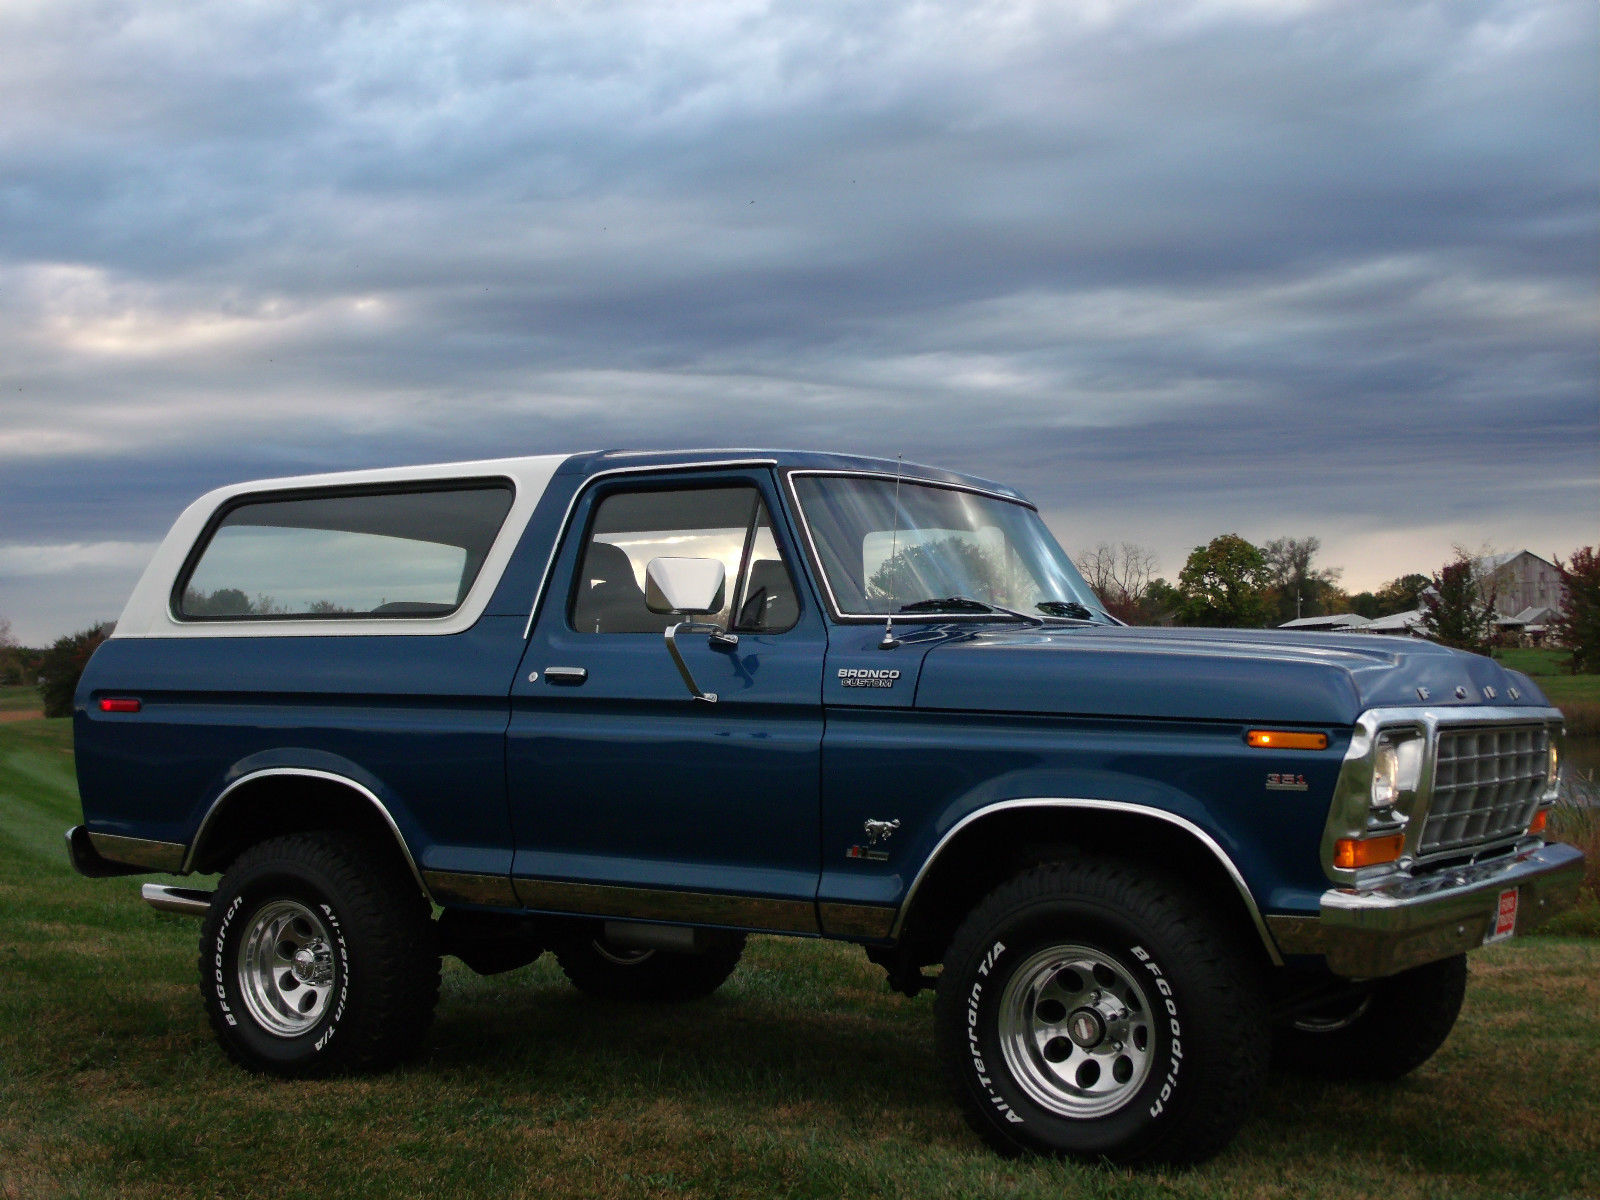 This Big Blue 1979 Ford Bronco Is Waiting For You 1980 Aftermarket Parts The Engine Has Been Beefed Up A Little With An Edelbrock Carb And Intake It Breathes Easier Courtesy Of Headers Dual Exhaust